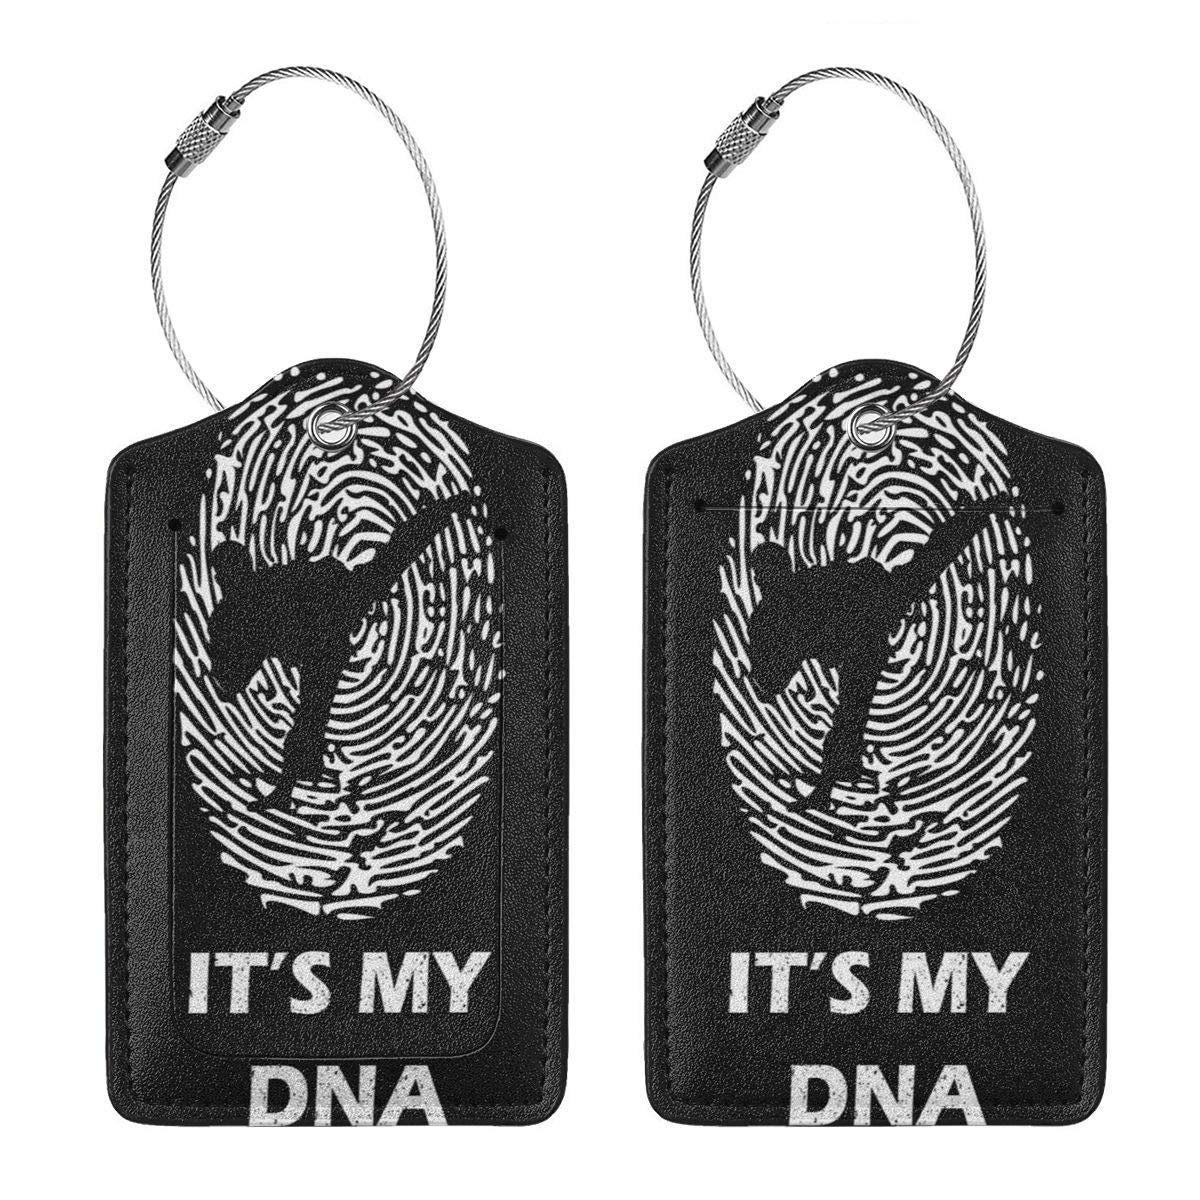 GoldK Finger DNA Taekwondo Leather Luggage Tags Baggage Bag Instrument Tag Travel Labels Accessories with Privacy Cover